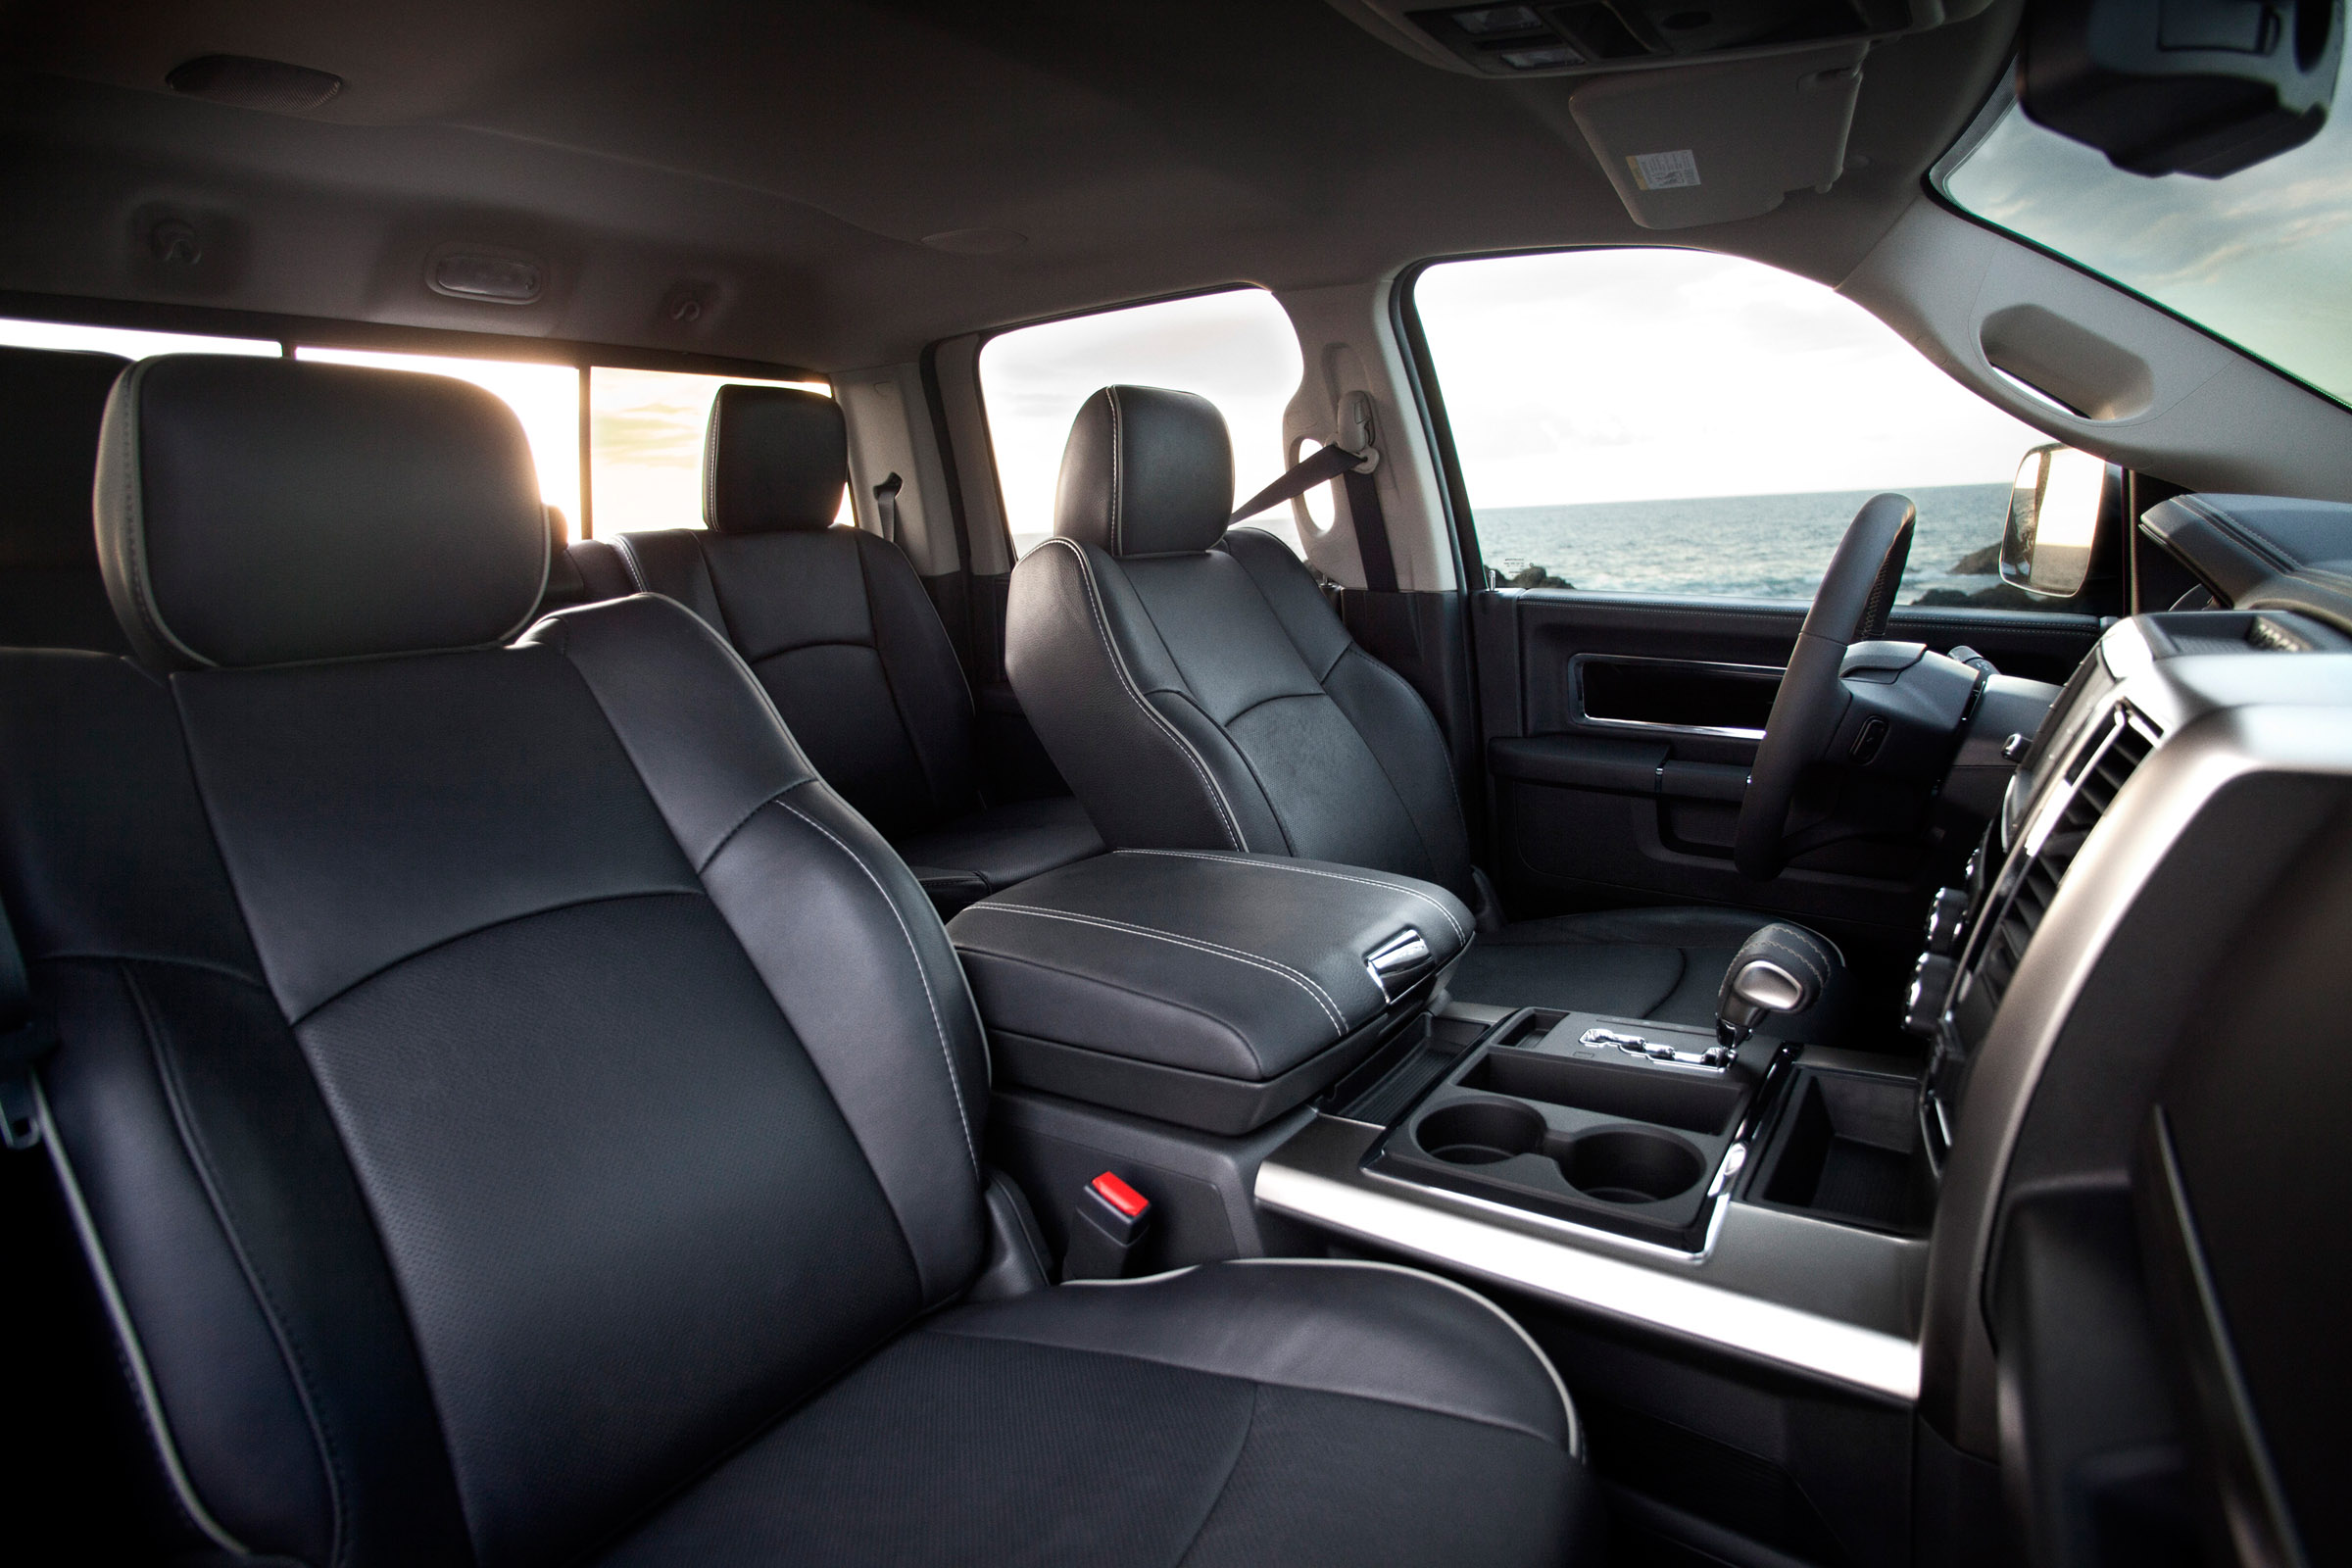 Ram Laramie Limited on Dodge Ram 3500 Interior